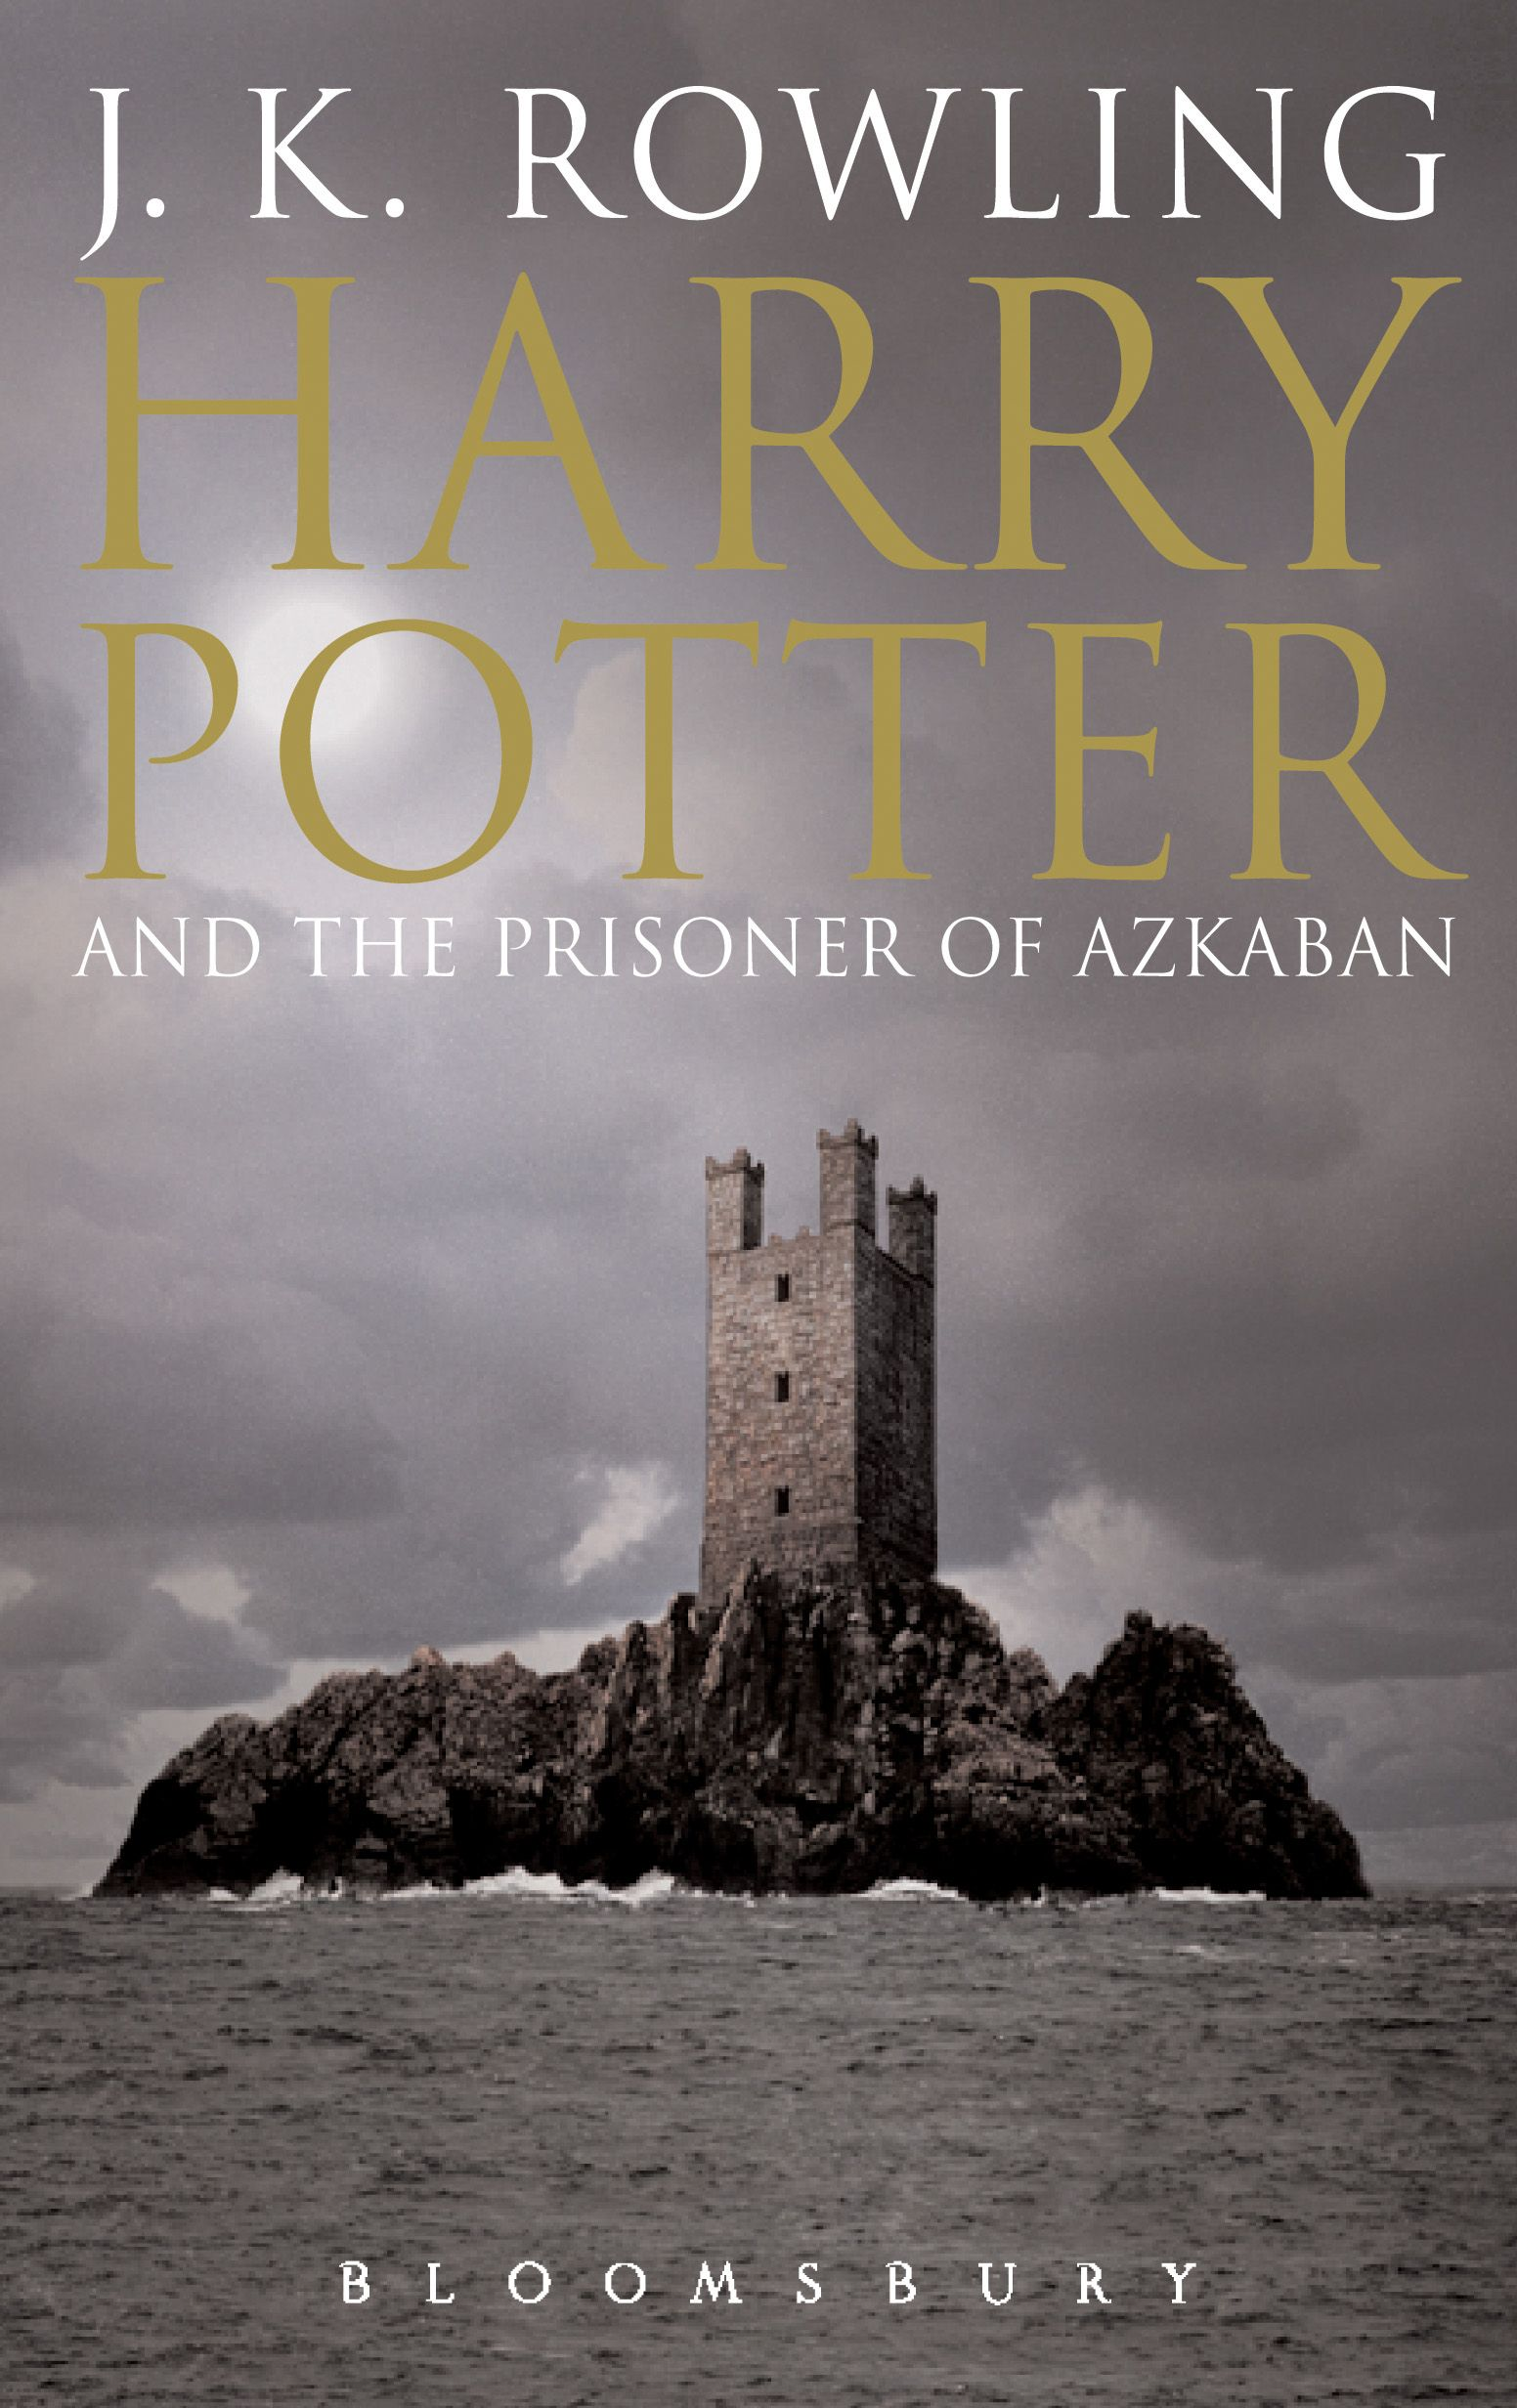 Harry Potter Book Cover Uk ~ Harry potter and the prisoner of azkaban uk adult books worth